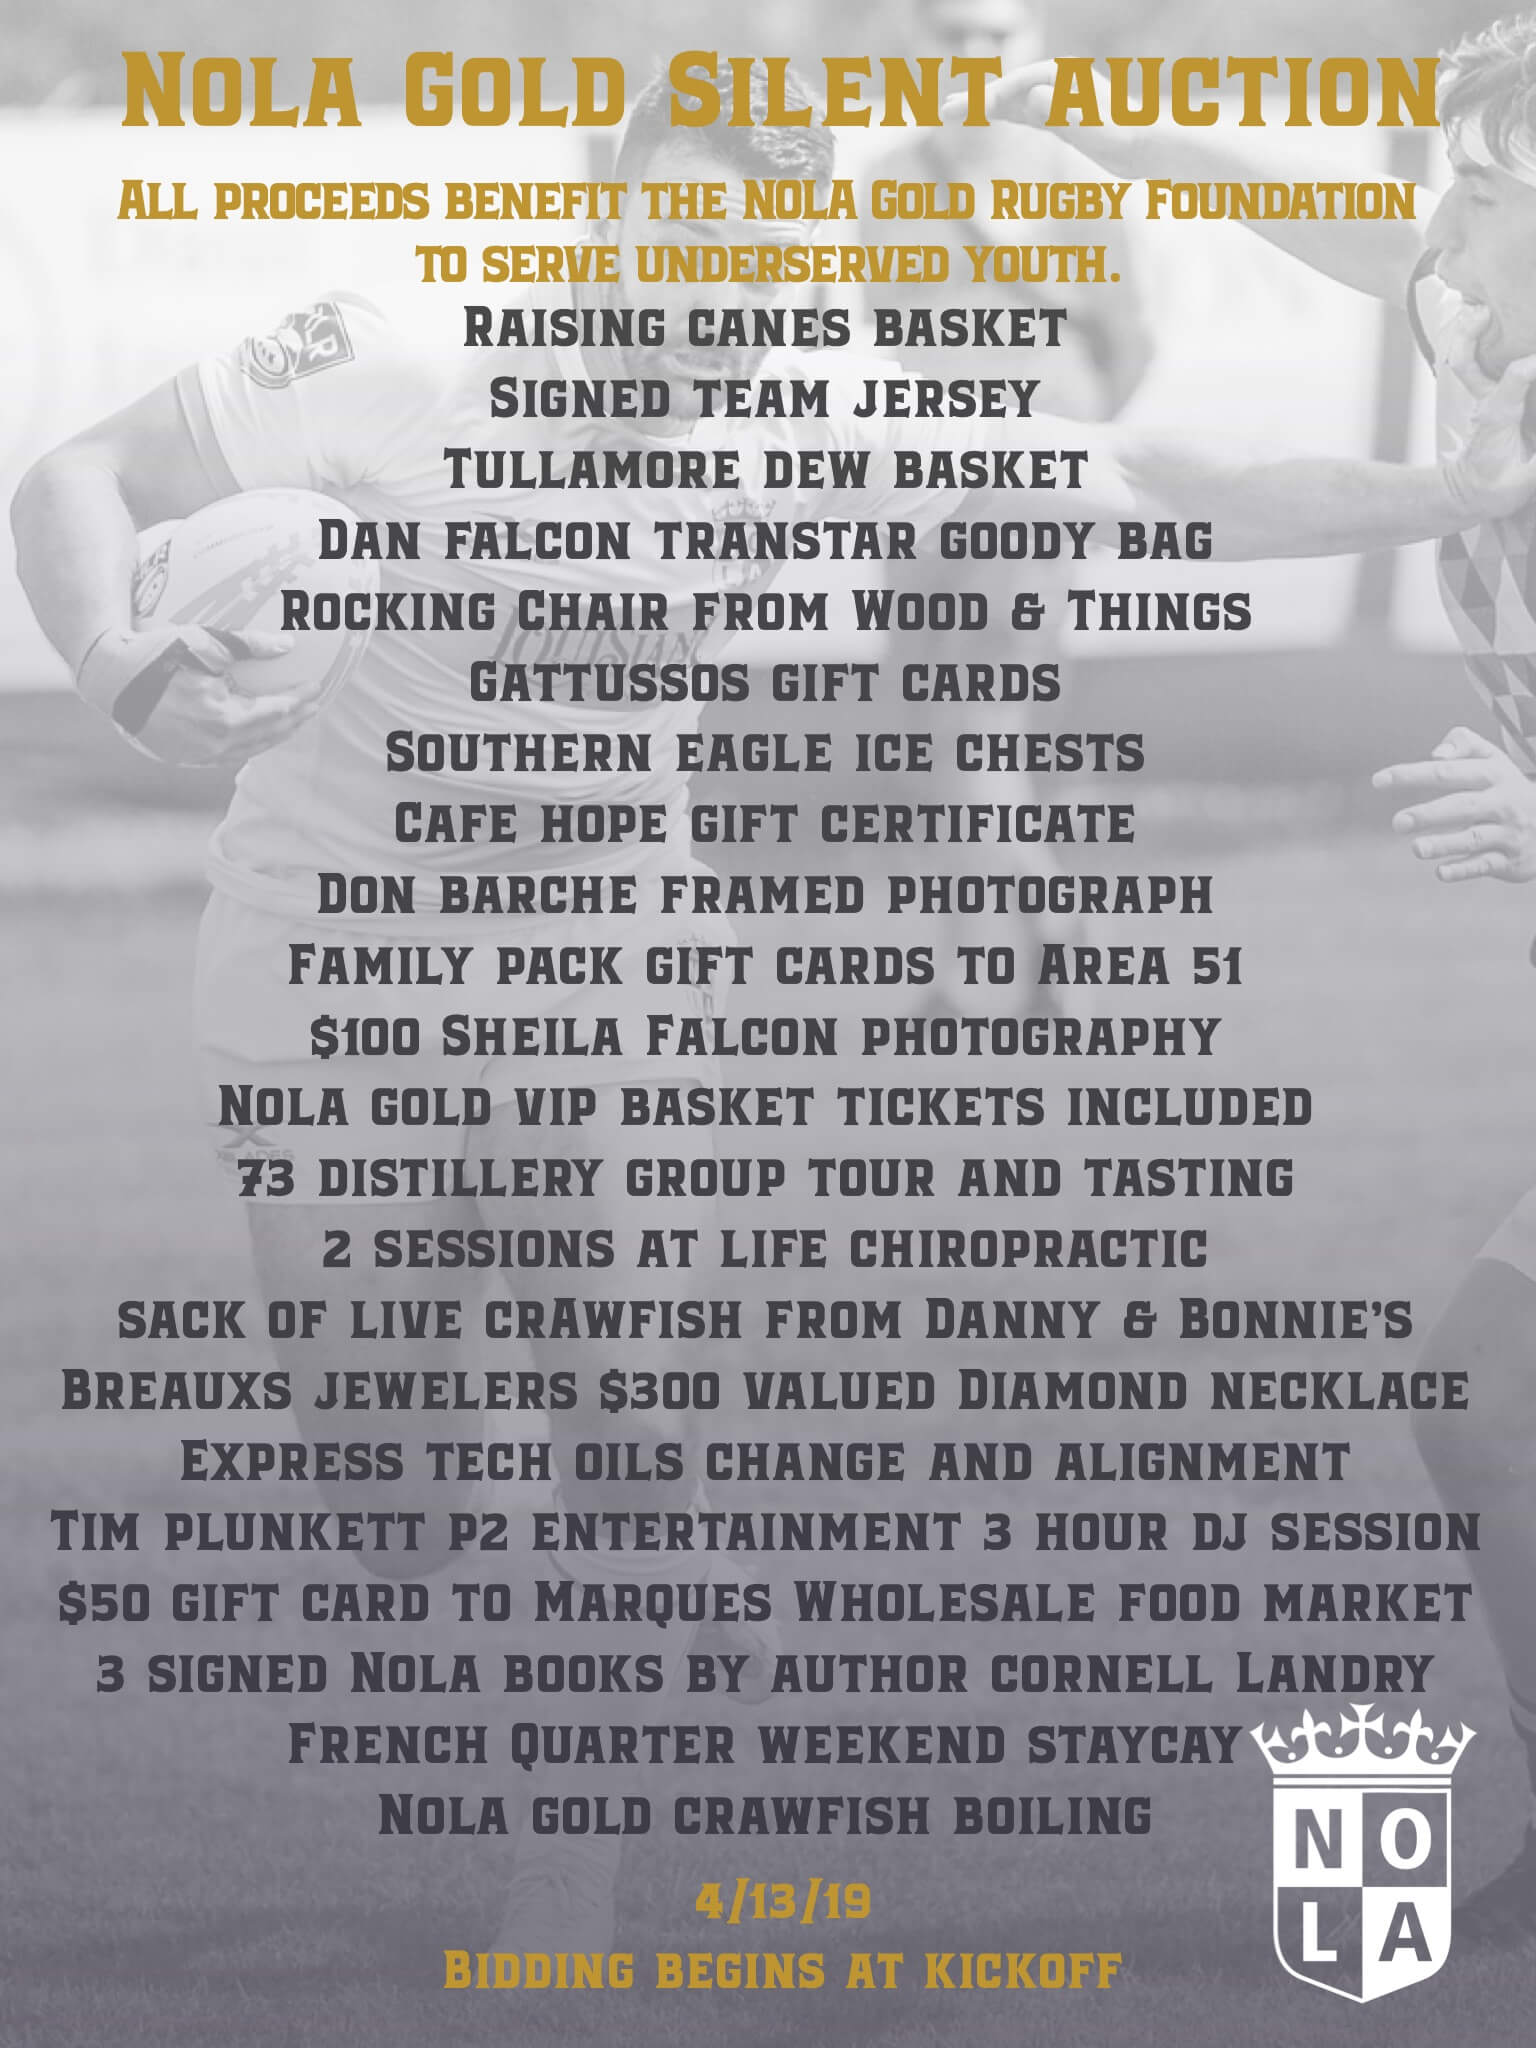 NOLA Gold Rugby Foundation Silent Auction